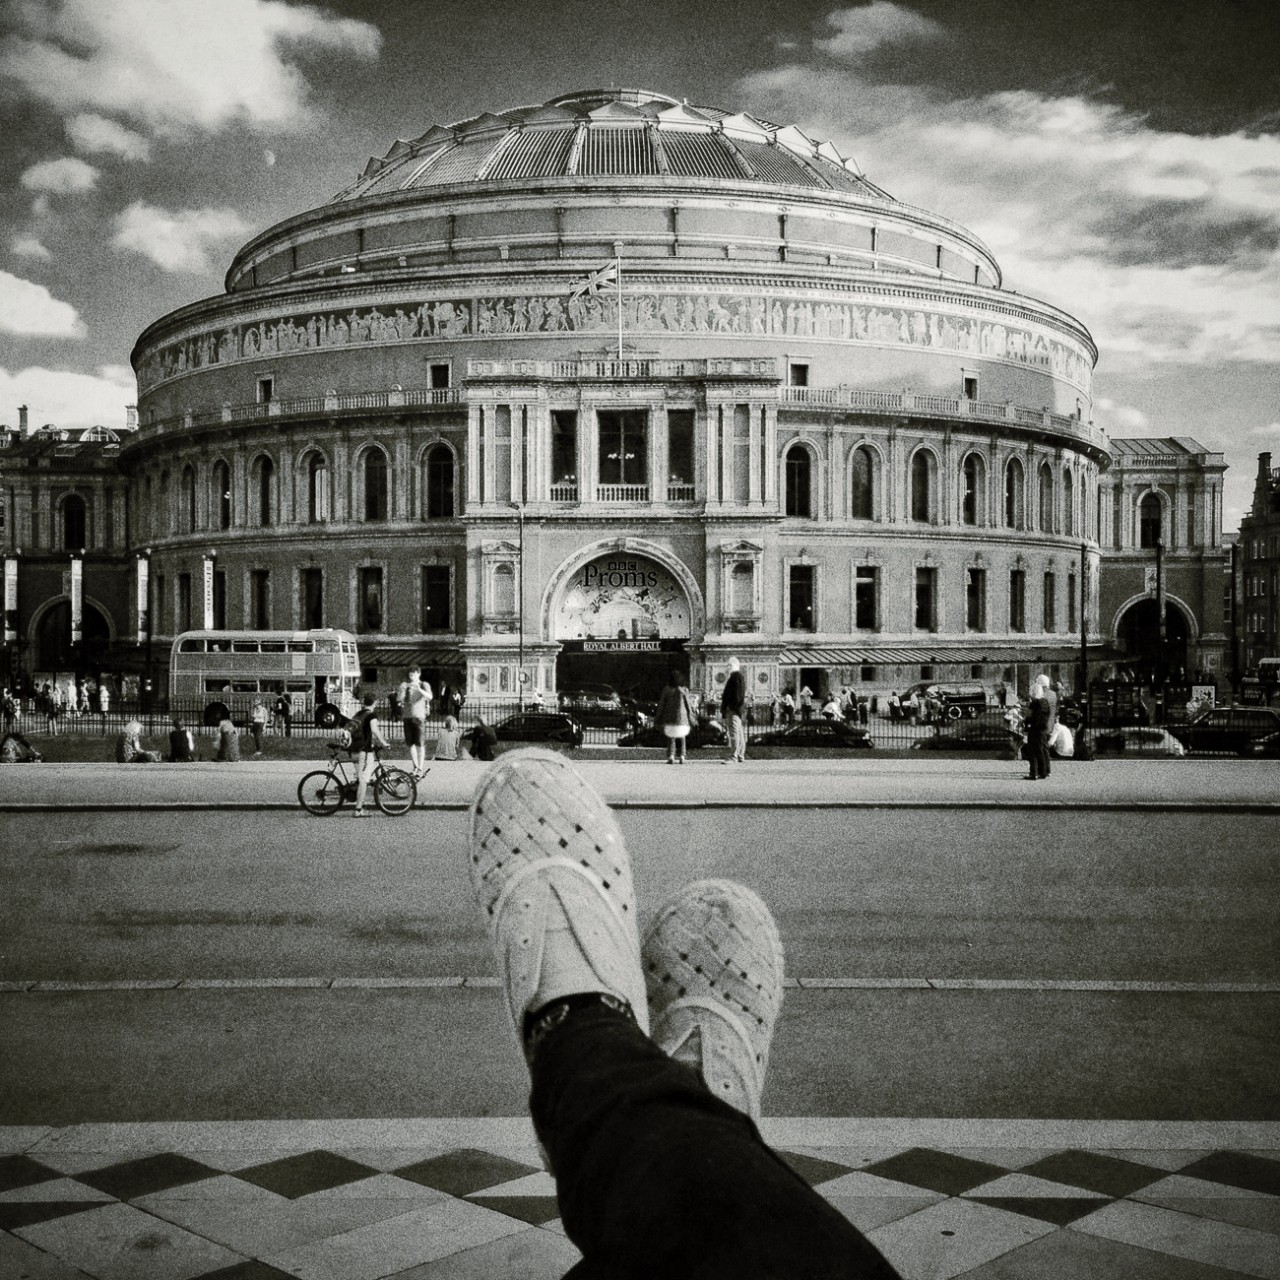 Royal Albert Hall in London 15.08.13